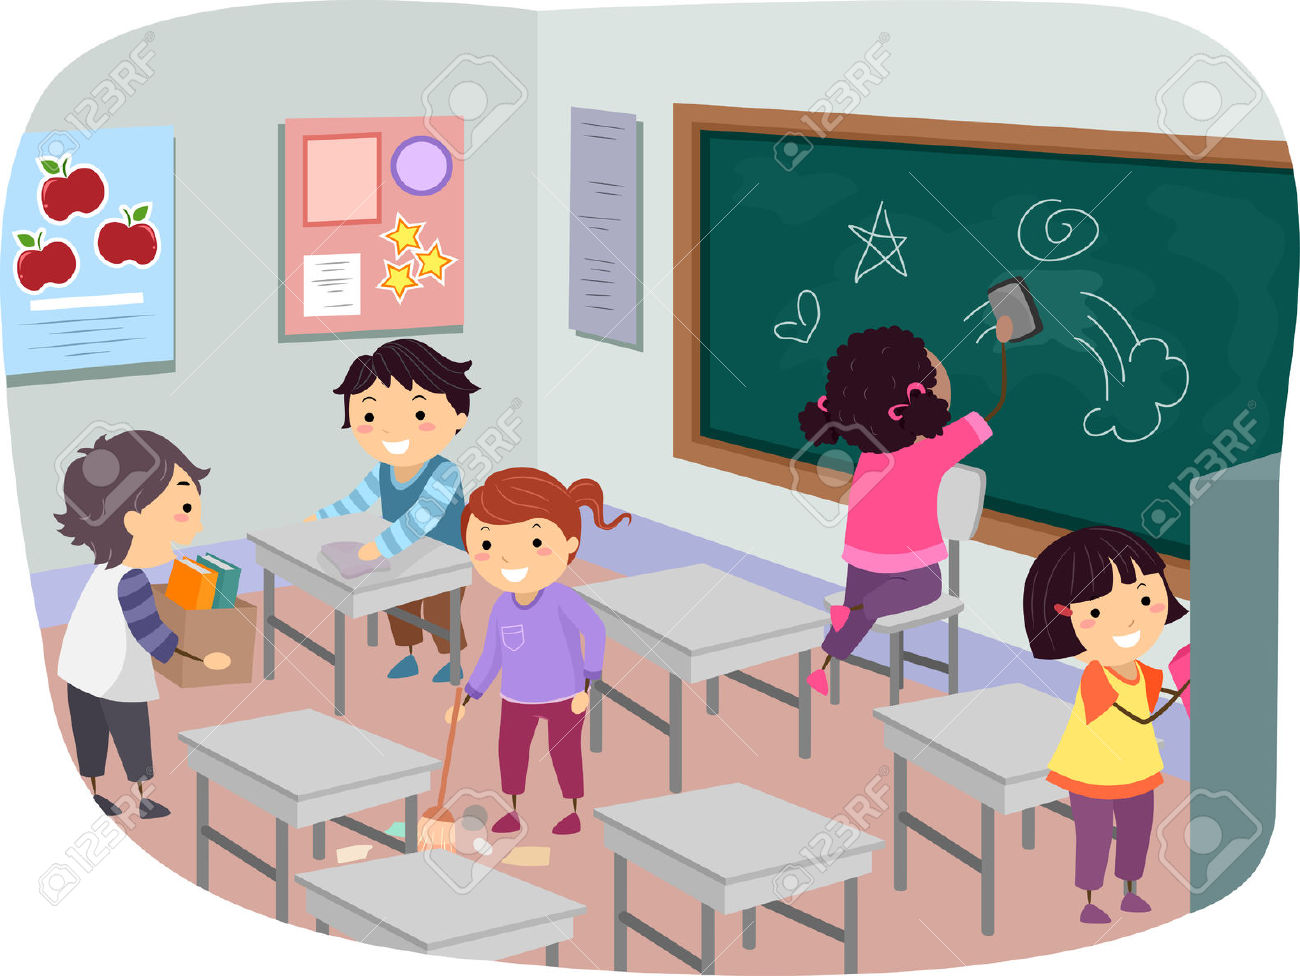 Children cleaning classroom clipart 3 » Clipart Station.